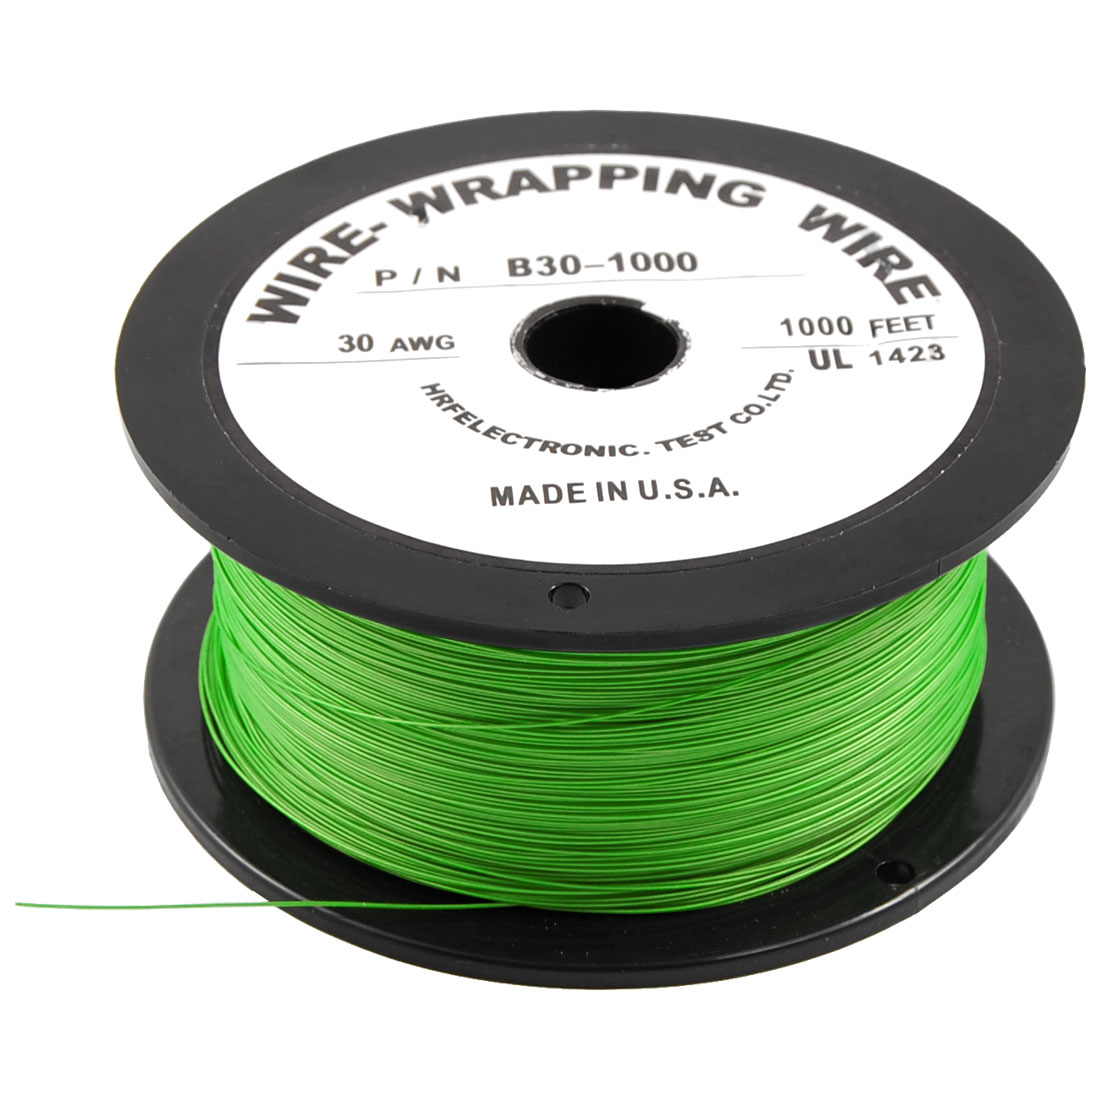 305M 30AWG Tin Plated Copper Wire Insulation Electronic Test Cable Roll Green